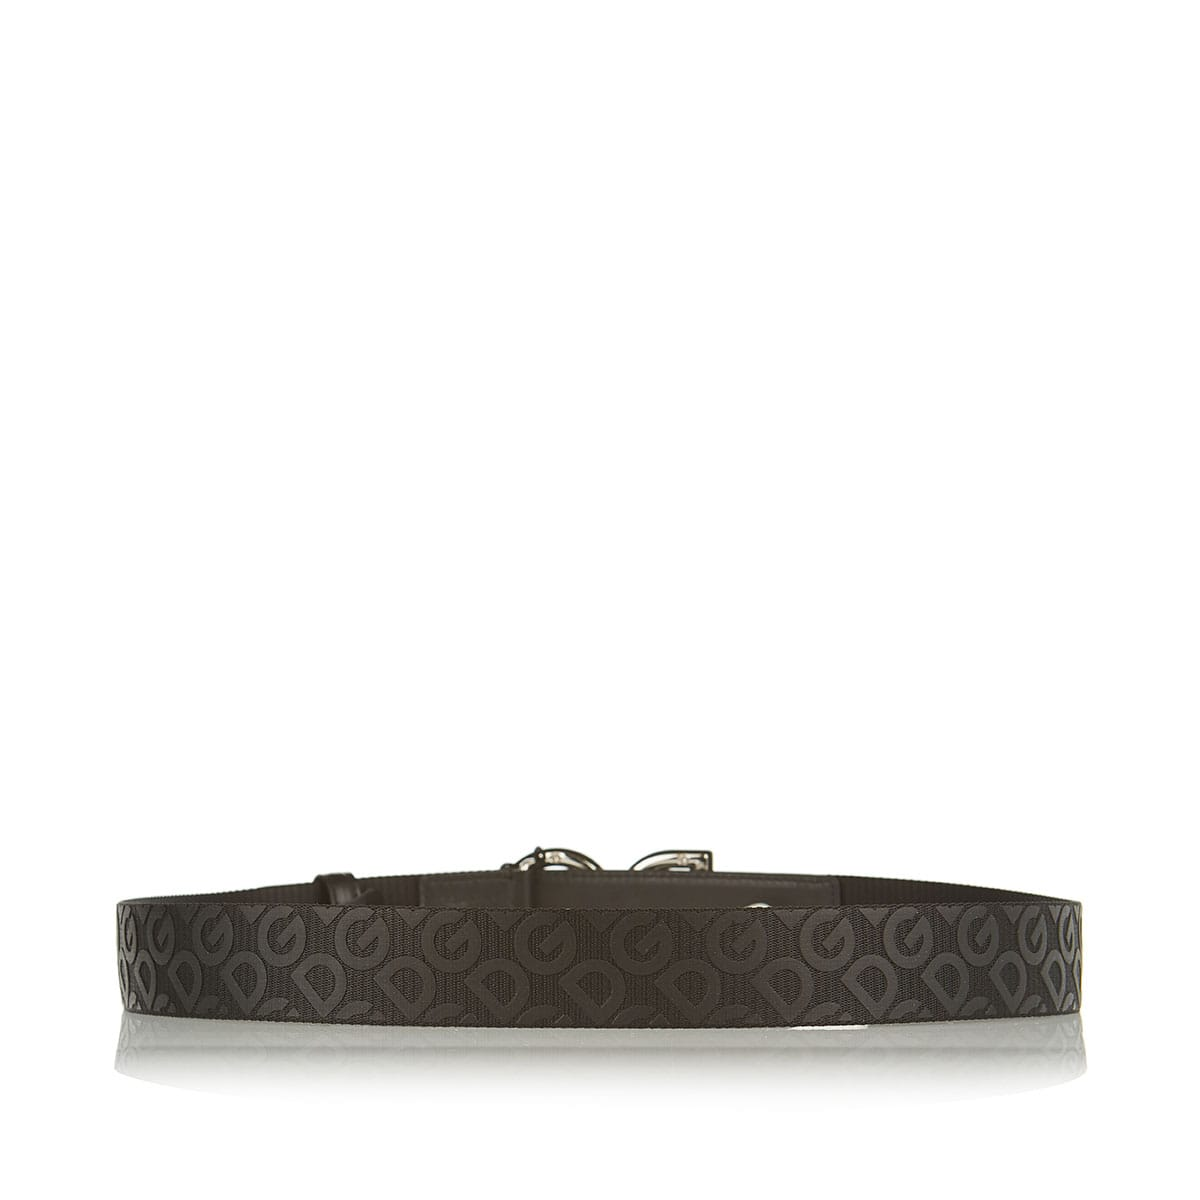 DG logo buckle belt